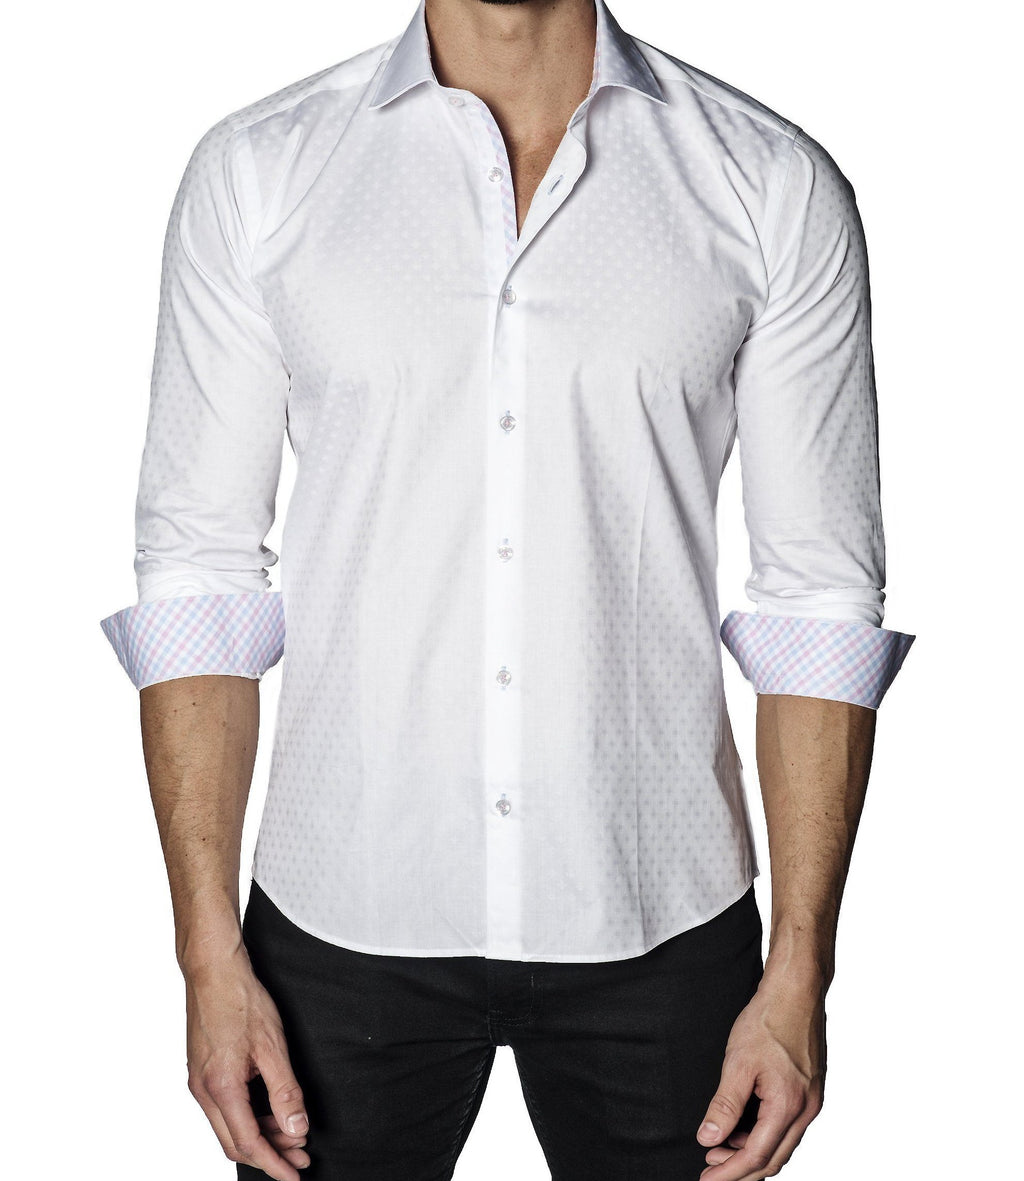 Men's White Long sleeve Shirt with Contrast Stitching.